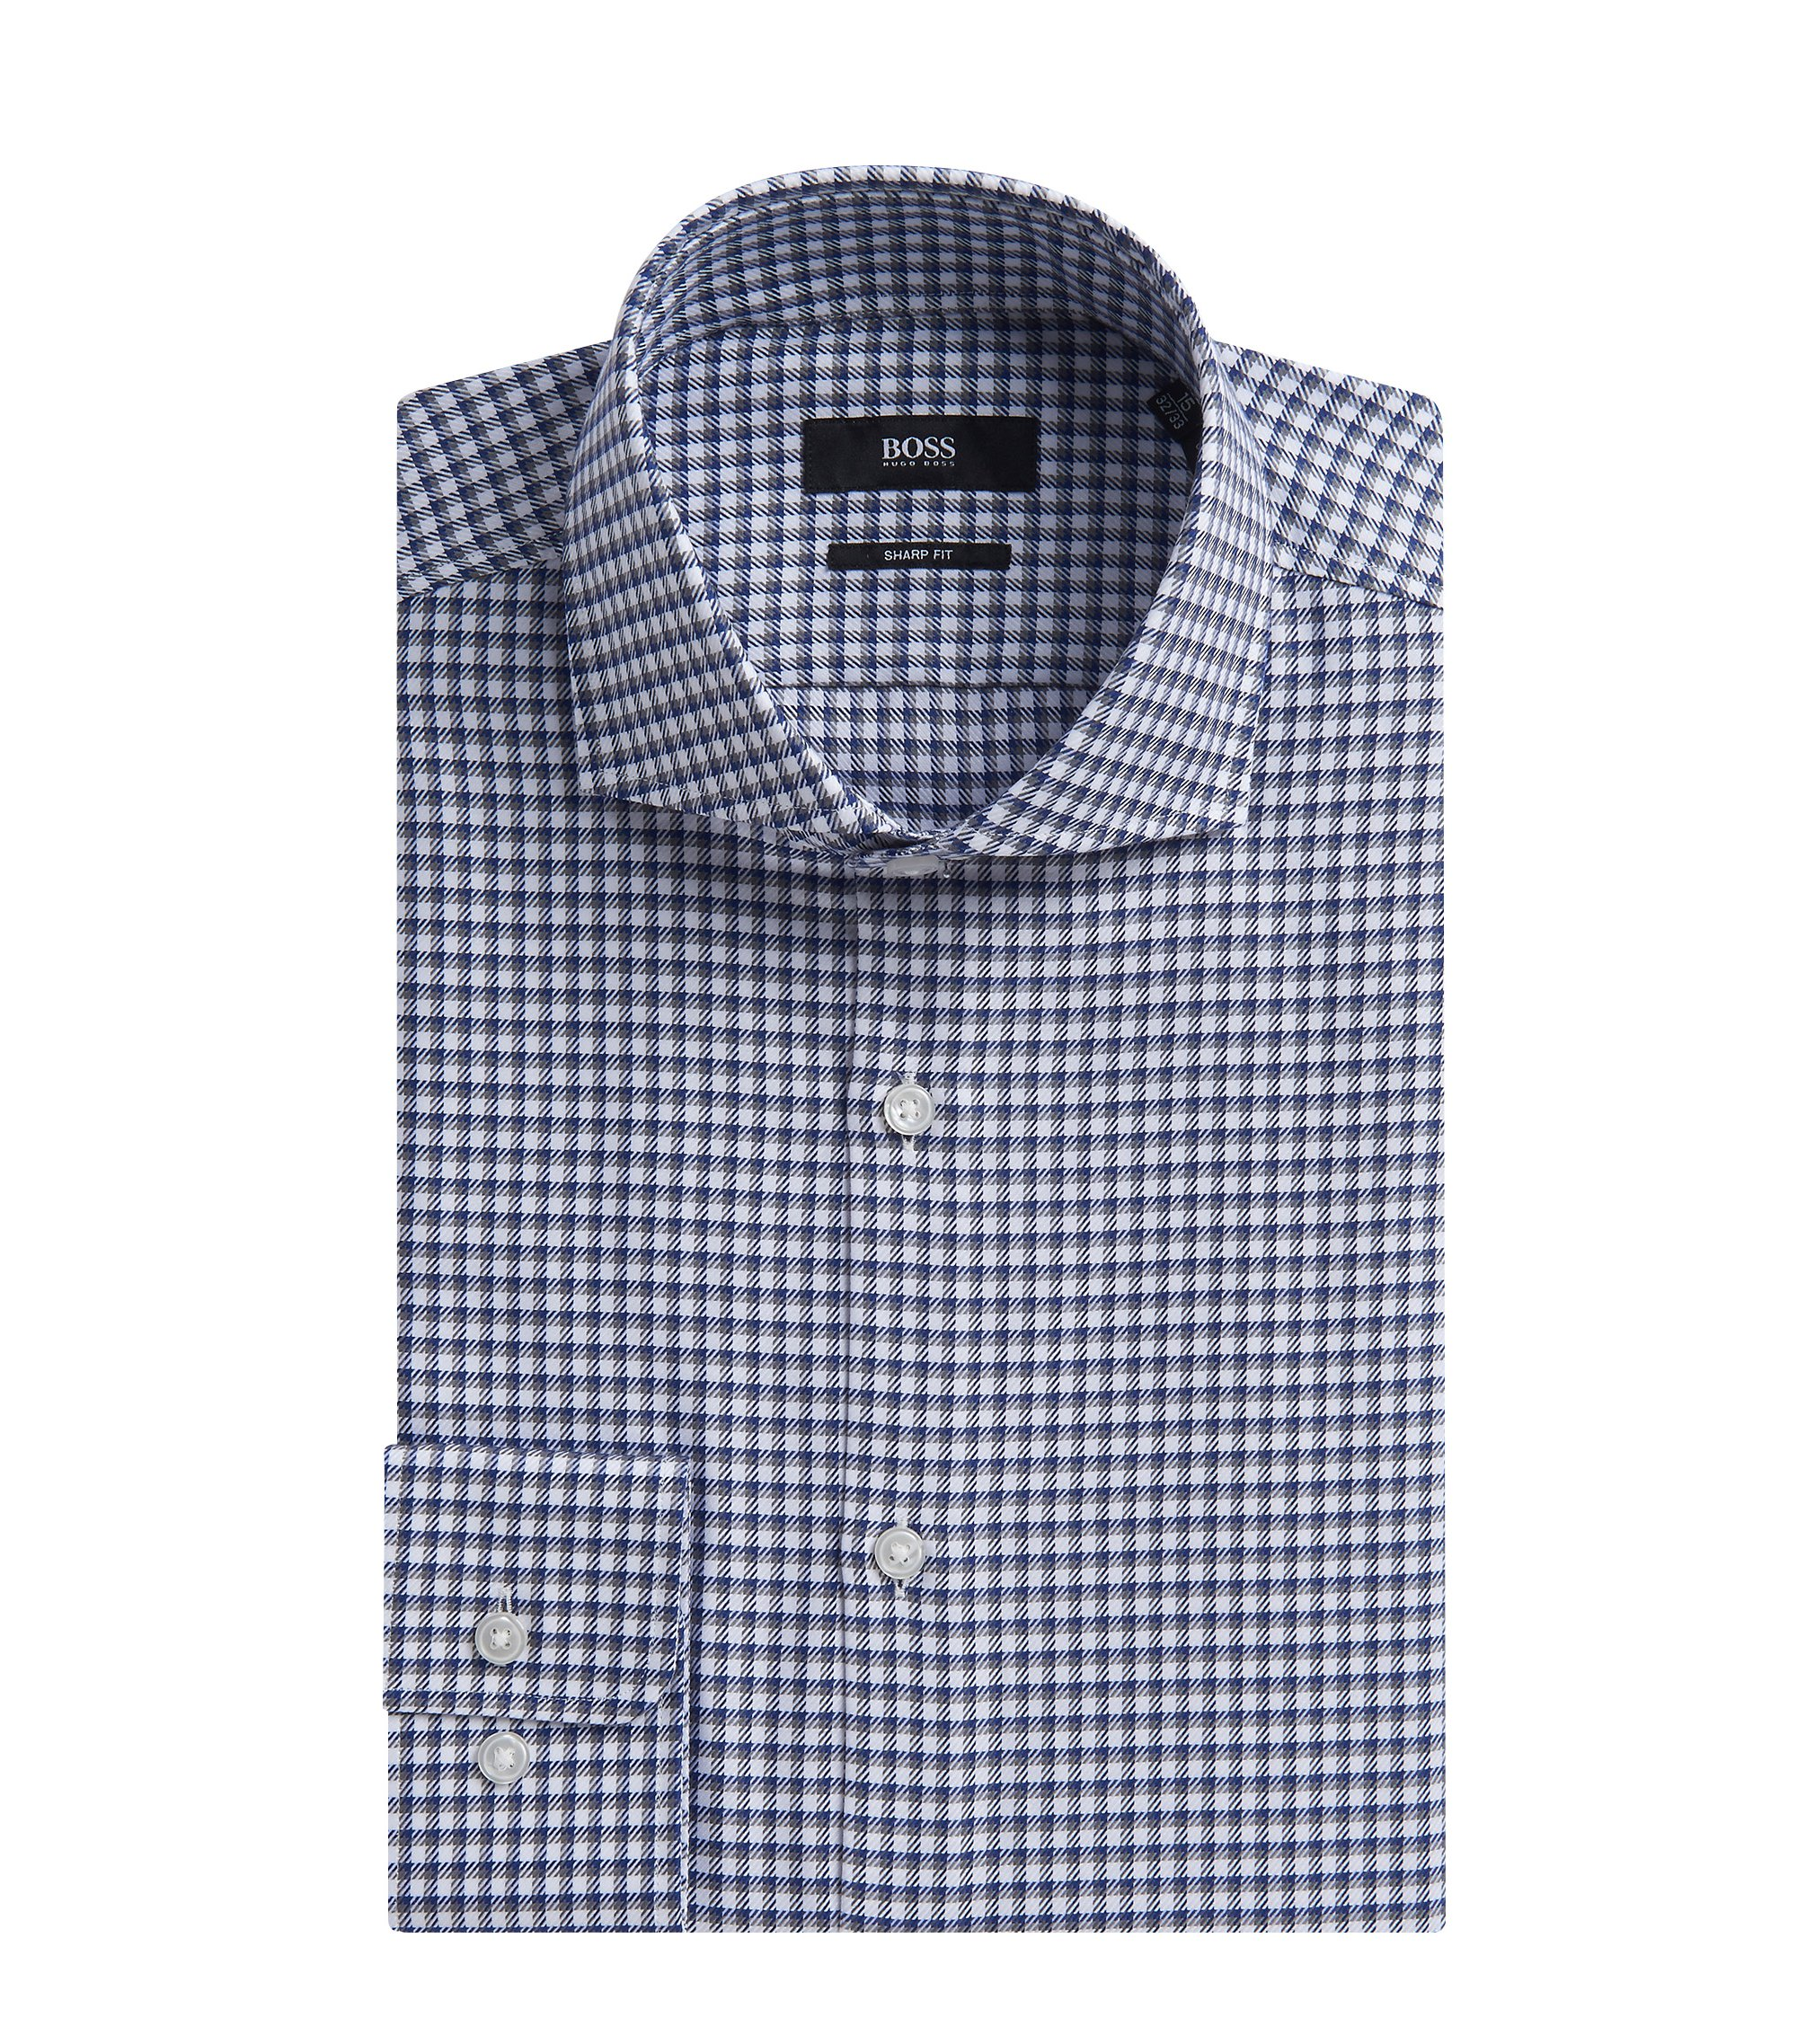 Checked Cotton Dress Shirt, Sharp Fit | Mark US, Grey